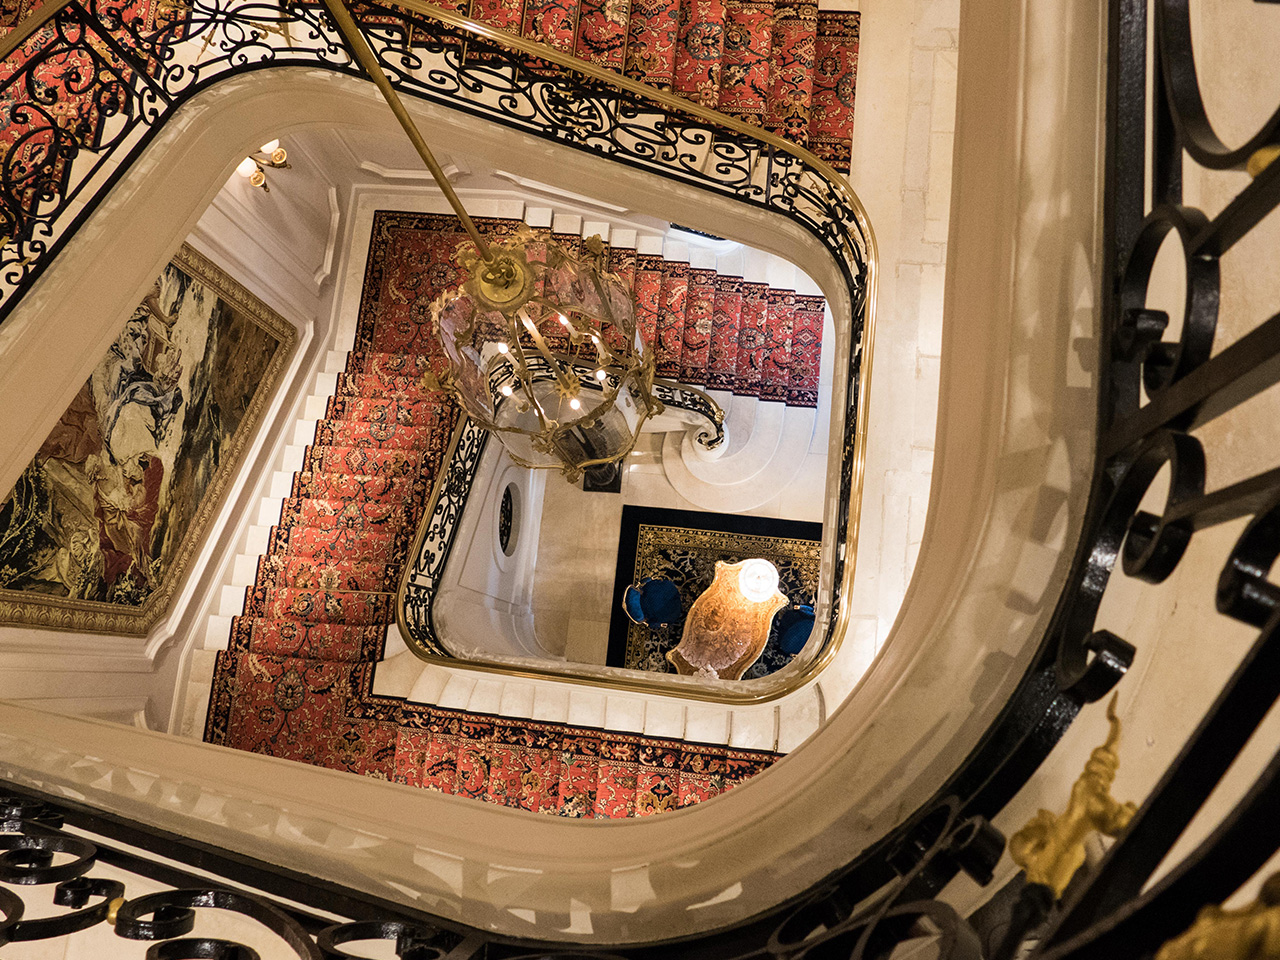 Winding wrought iron staircase at Ritz Paris Hotel